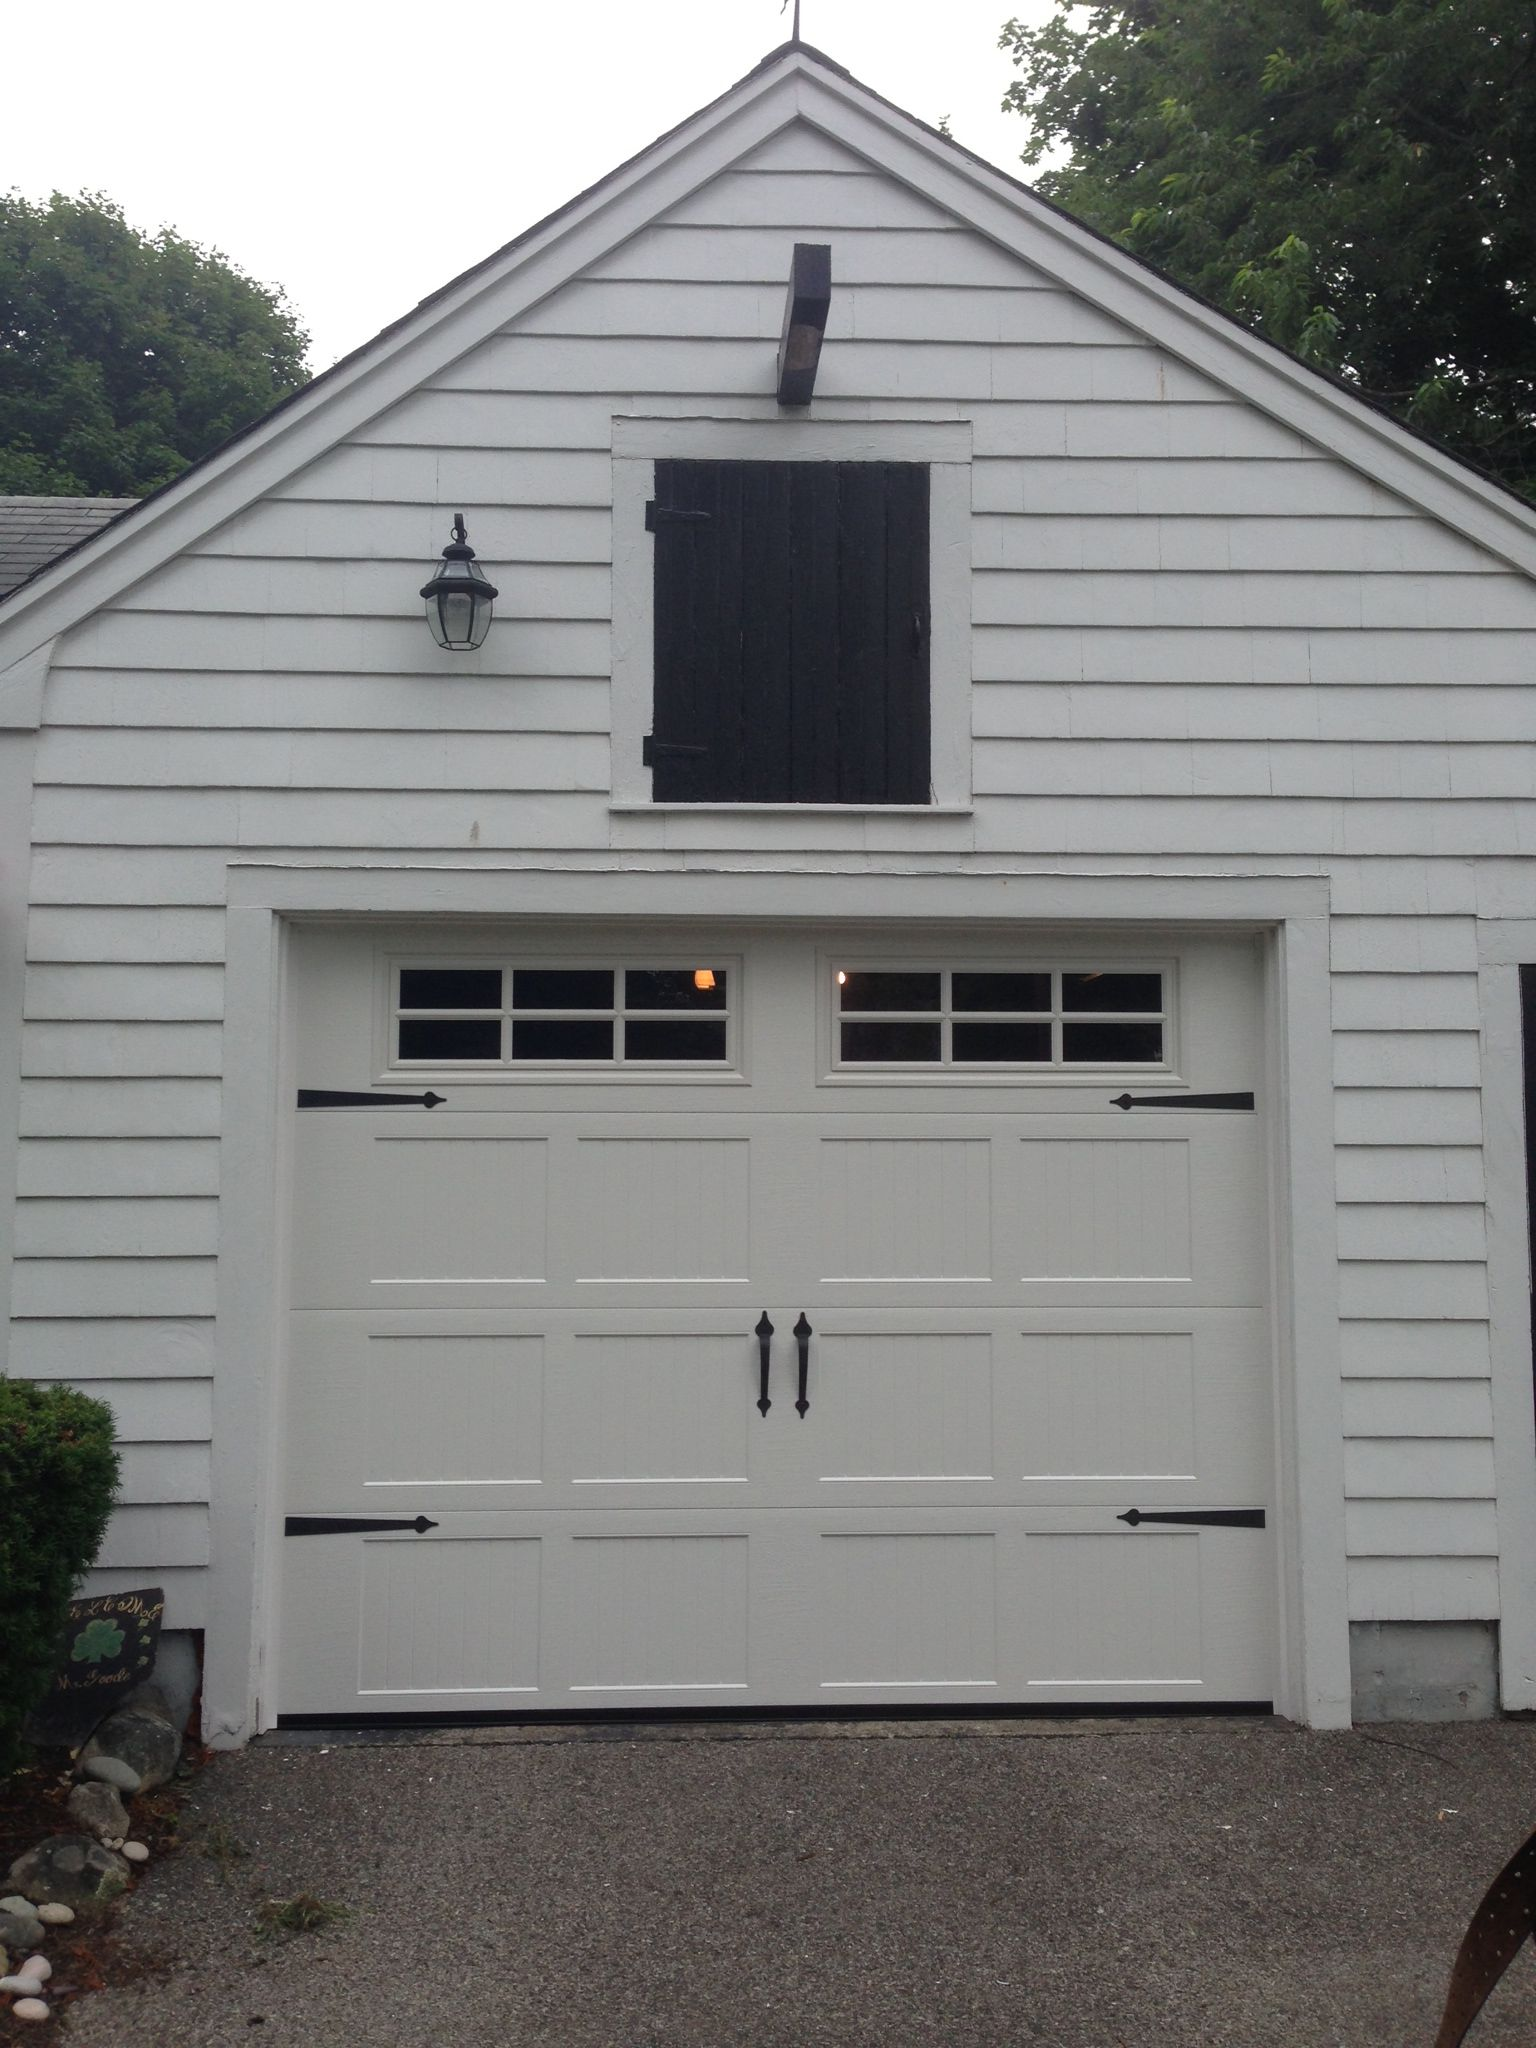 Haas Model 660 Steel Carriage House Style Garage Door In White With 6 Pane  Glass U0026 Flat Black Spade Decorative Hardware. Installed By Mortland Overhead  ...